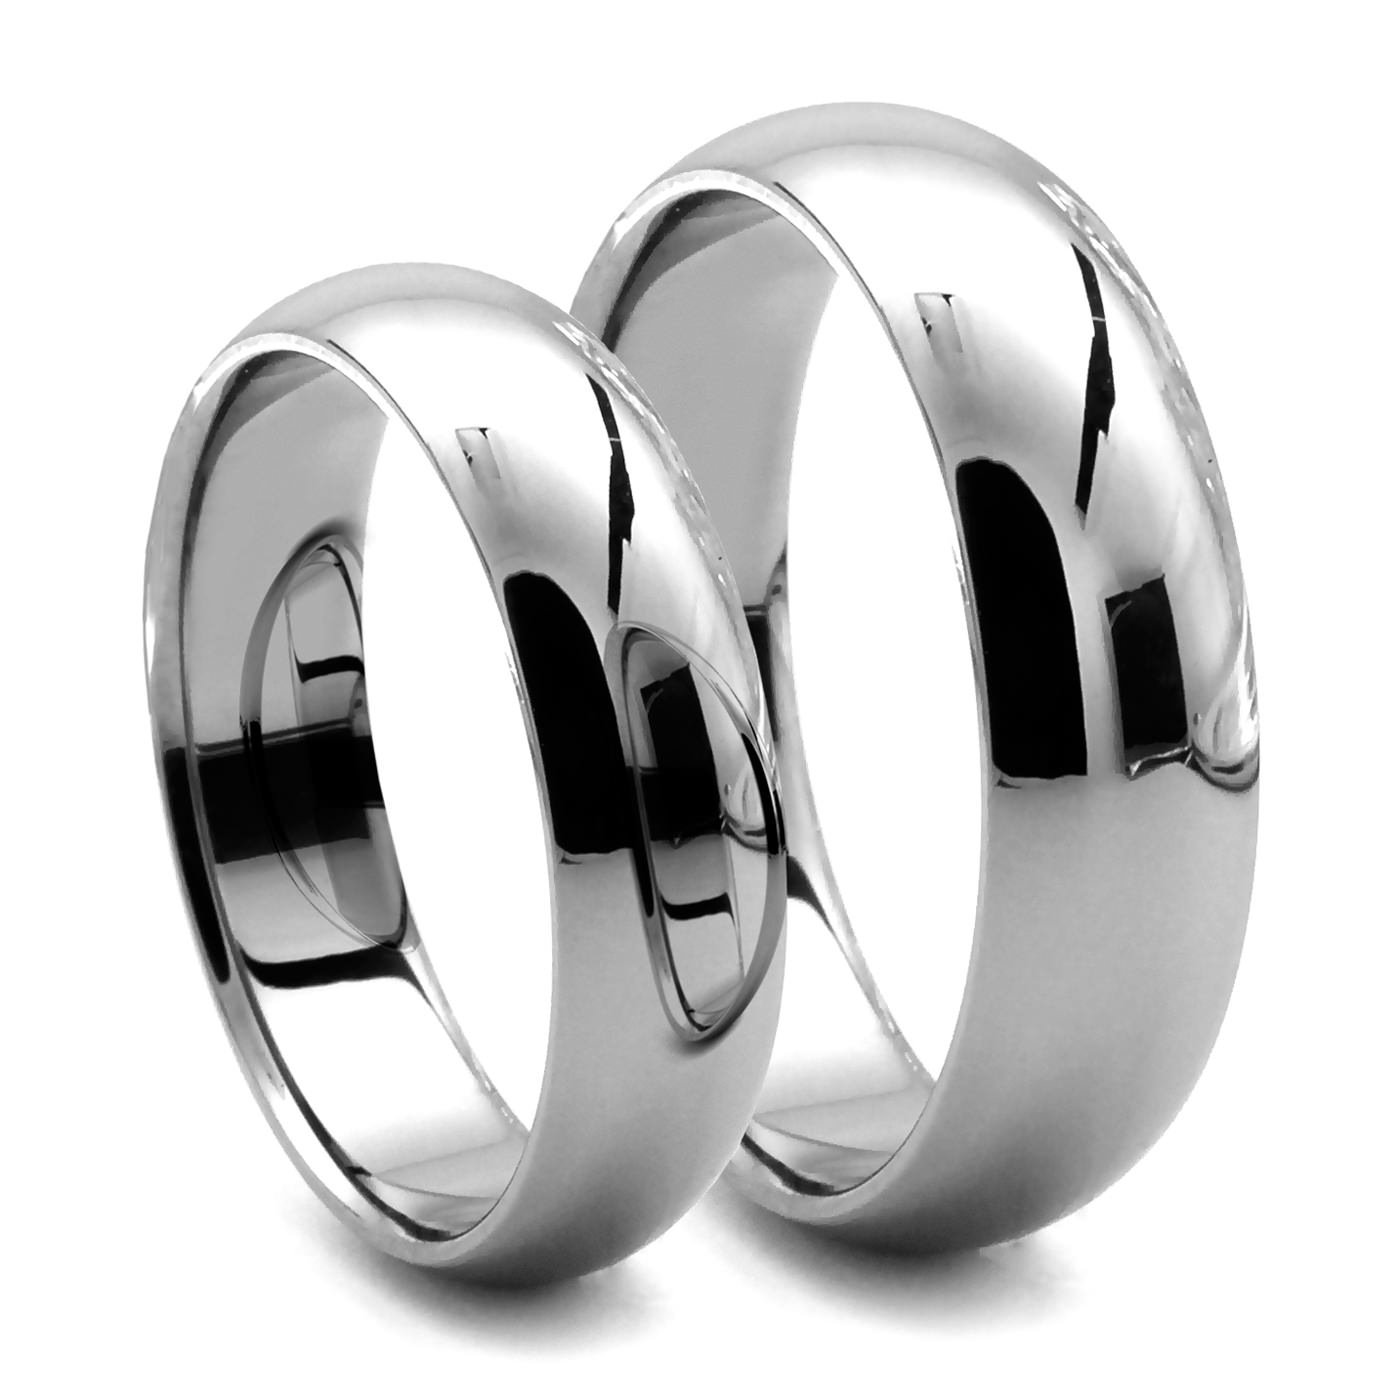 ring eclipse band image palladium lance mens james platinum wedding eternity bands